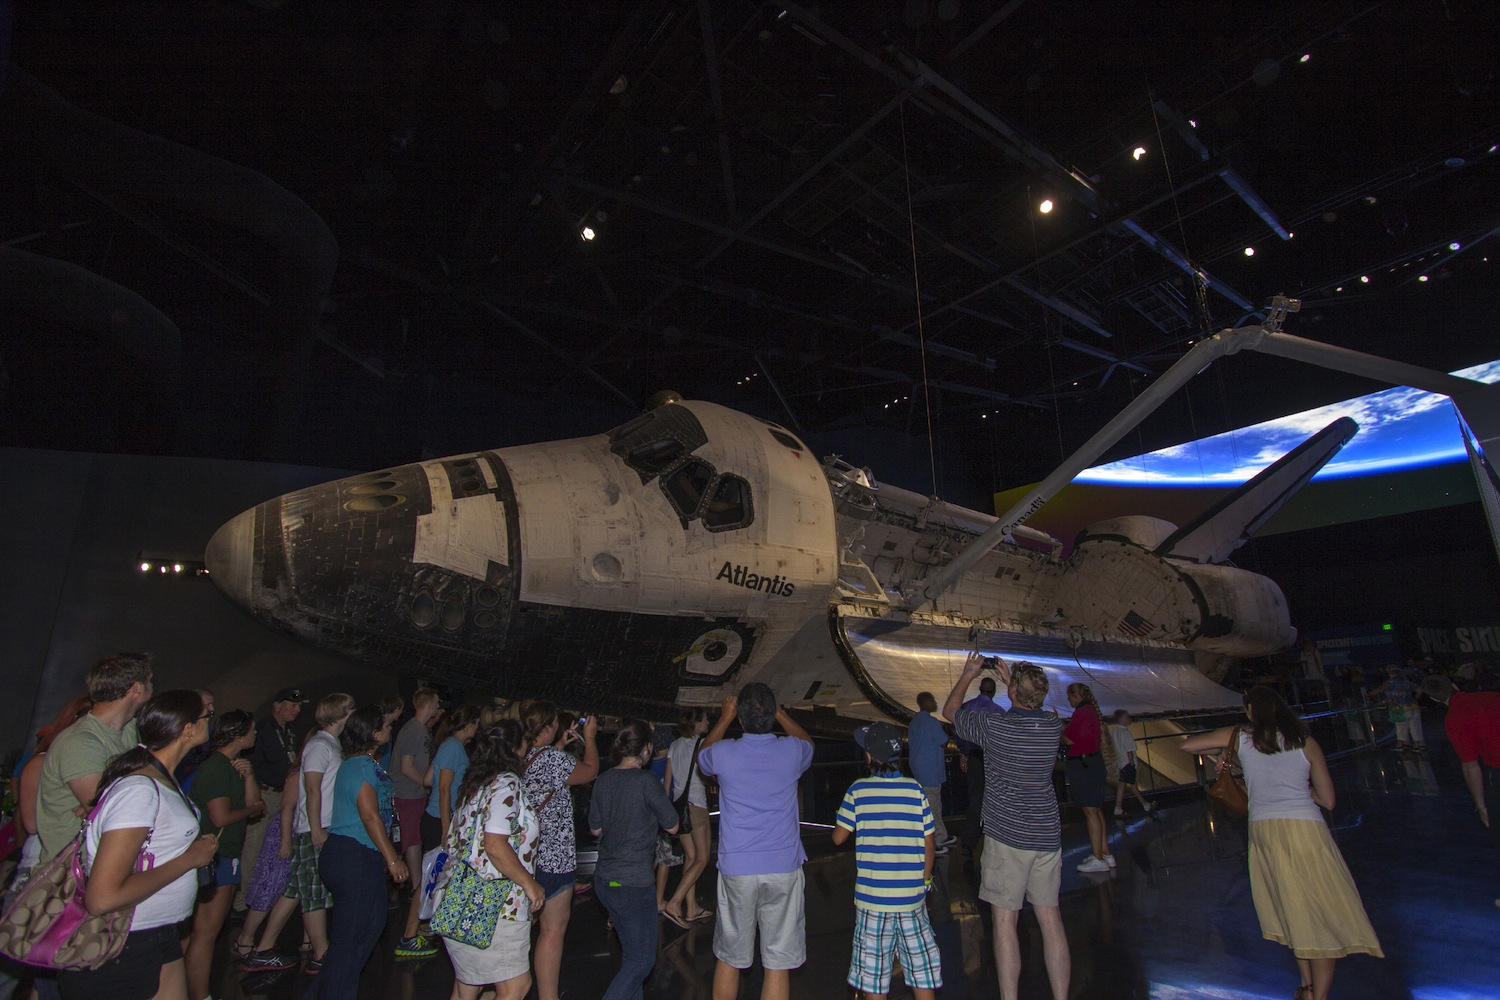 Tour Gets Up Close to Shuttle